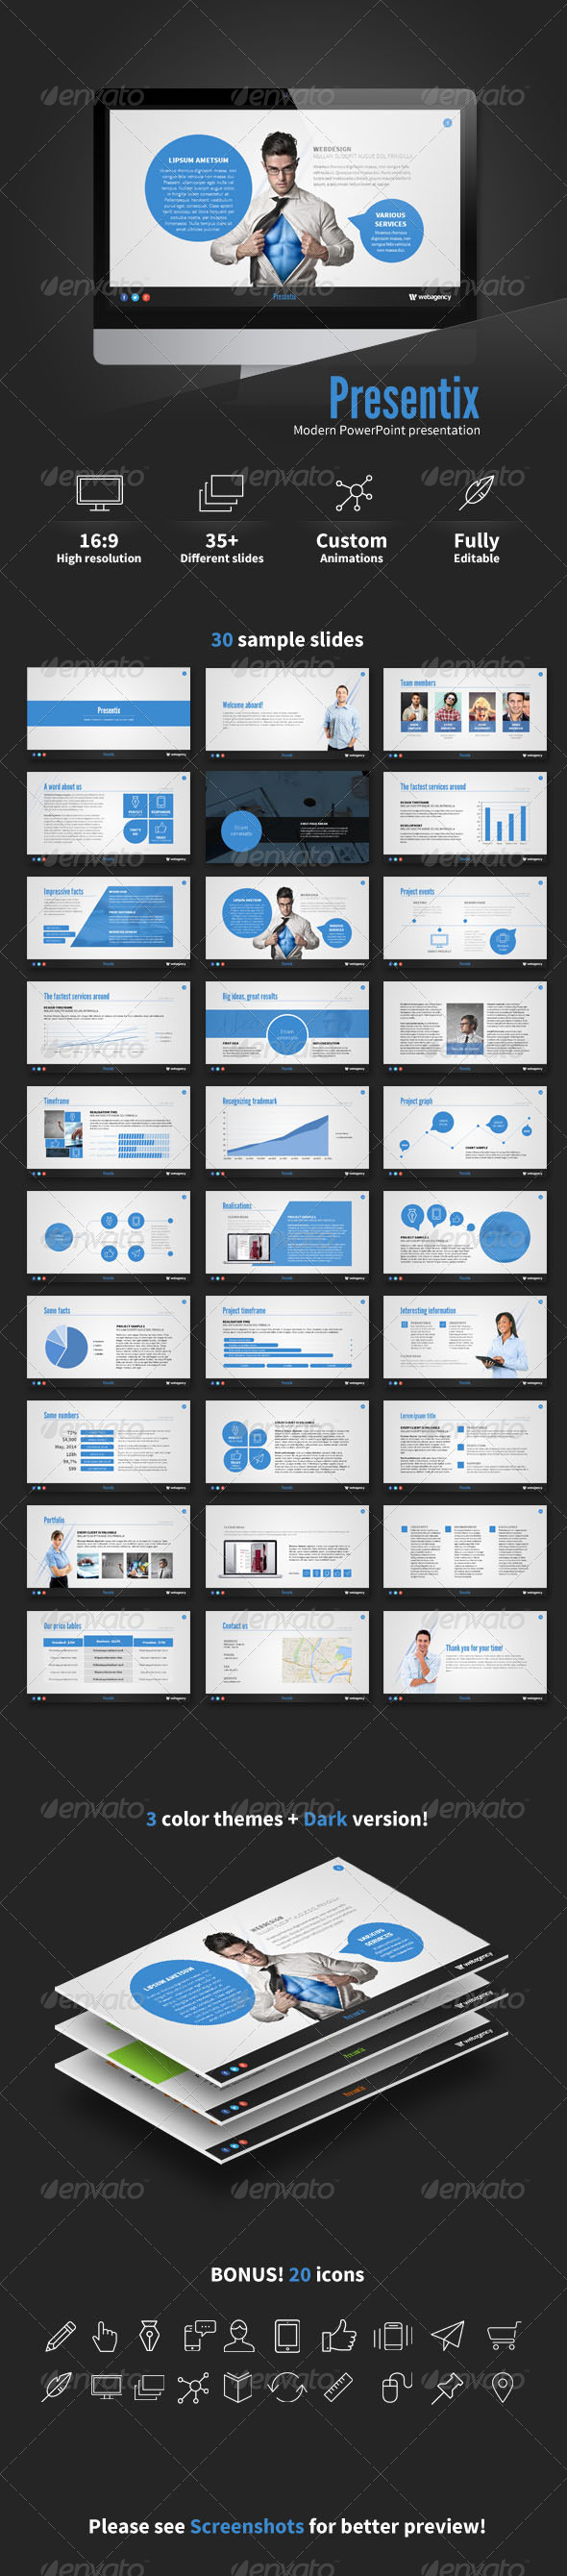 GraphicRiver Presentix PowerPoint presentation 6847709